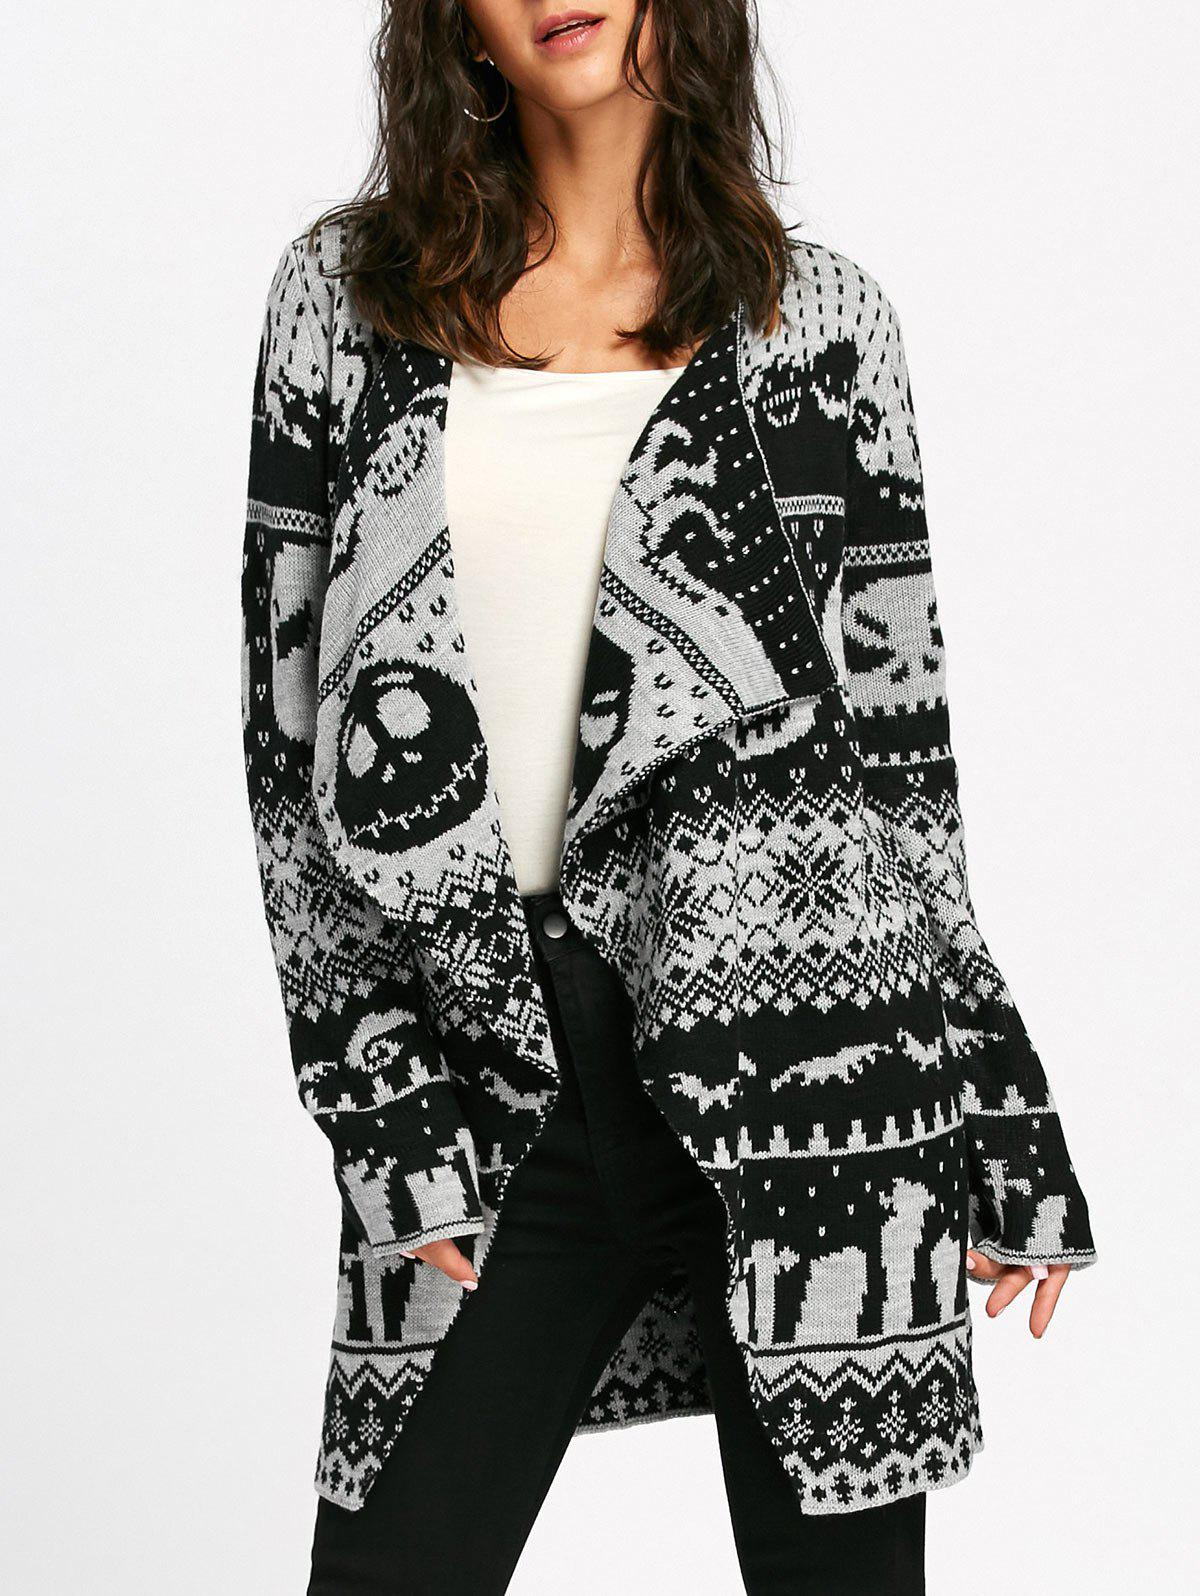 Halloween Skull Knitting Tunic Cardigan - LIGHT GRAY M